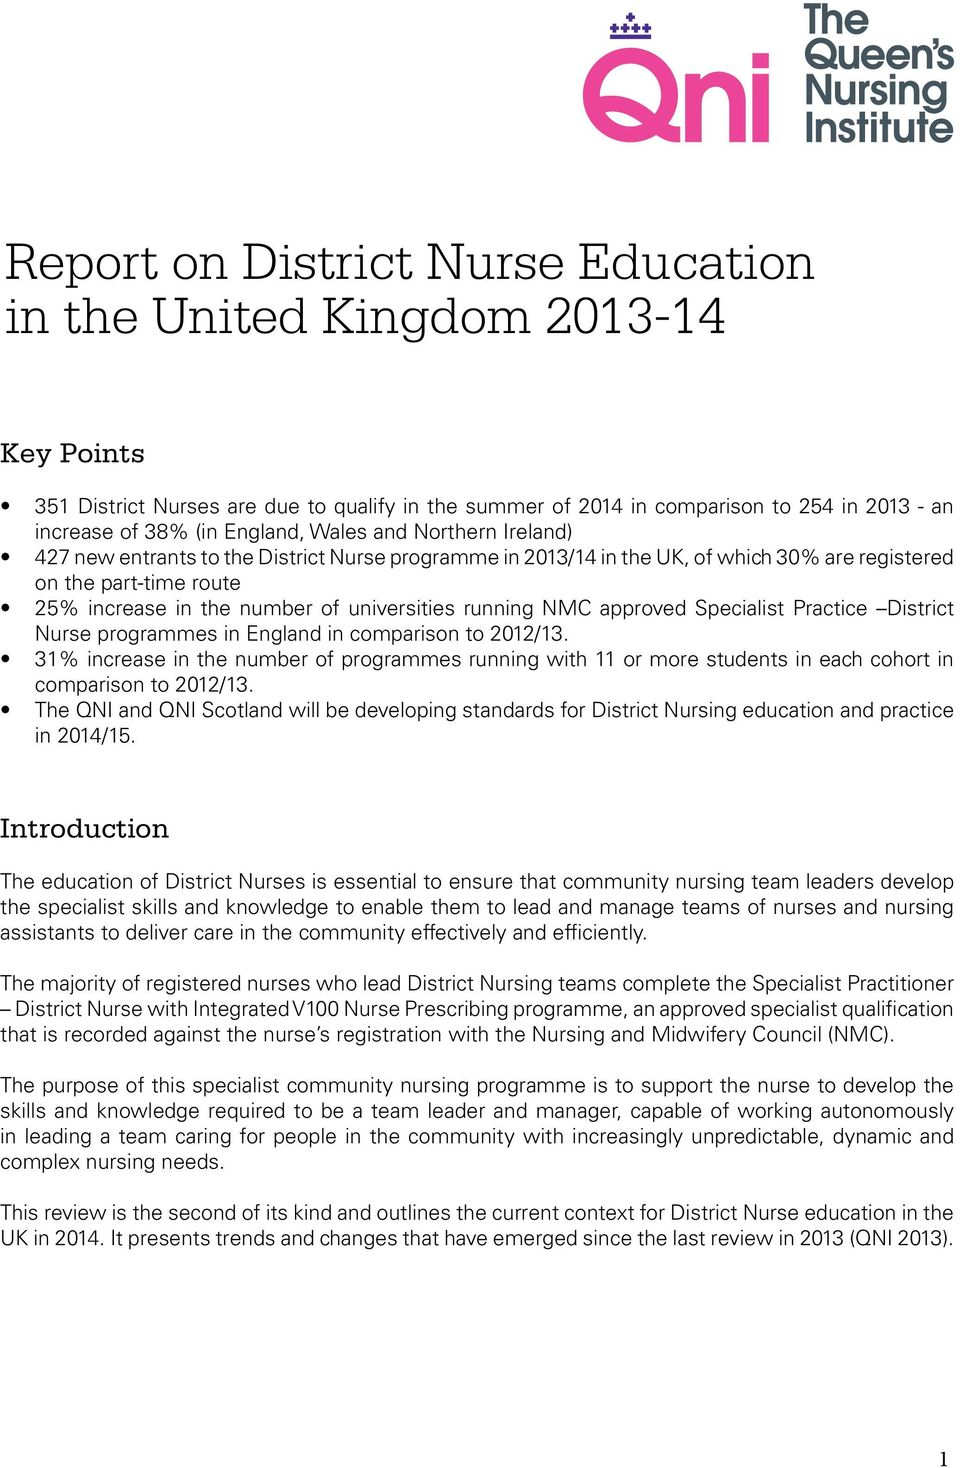 running NMC approved Specialist Practice District Nurse programmes in England in comparison to 2012/13.